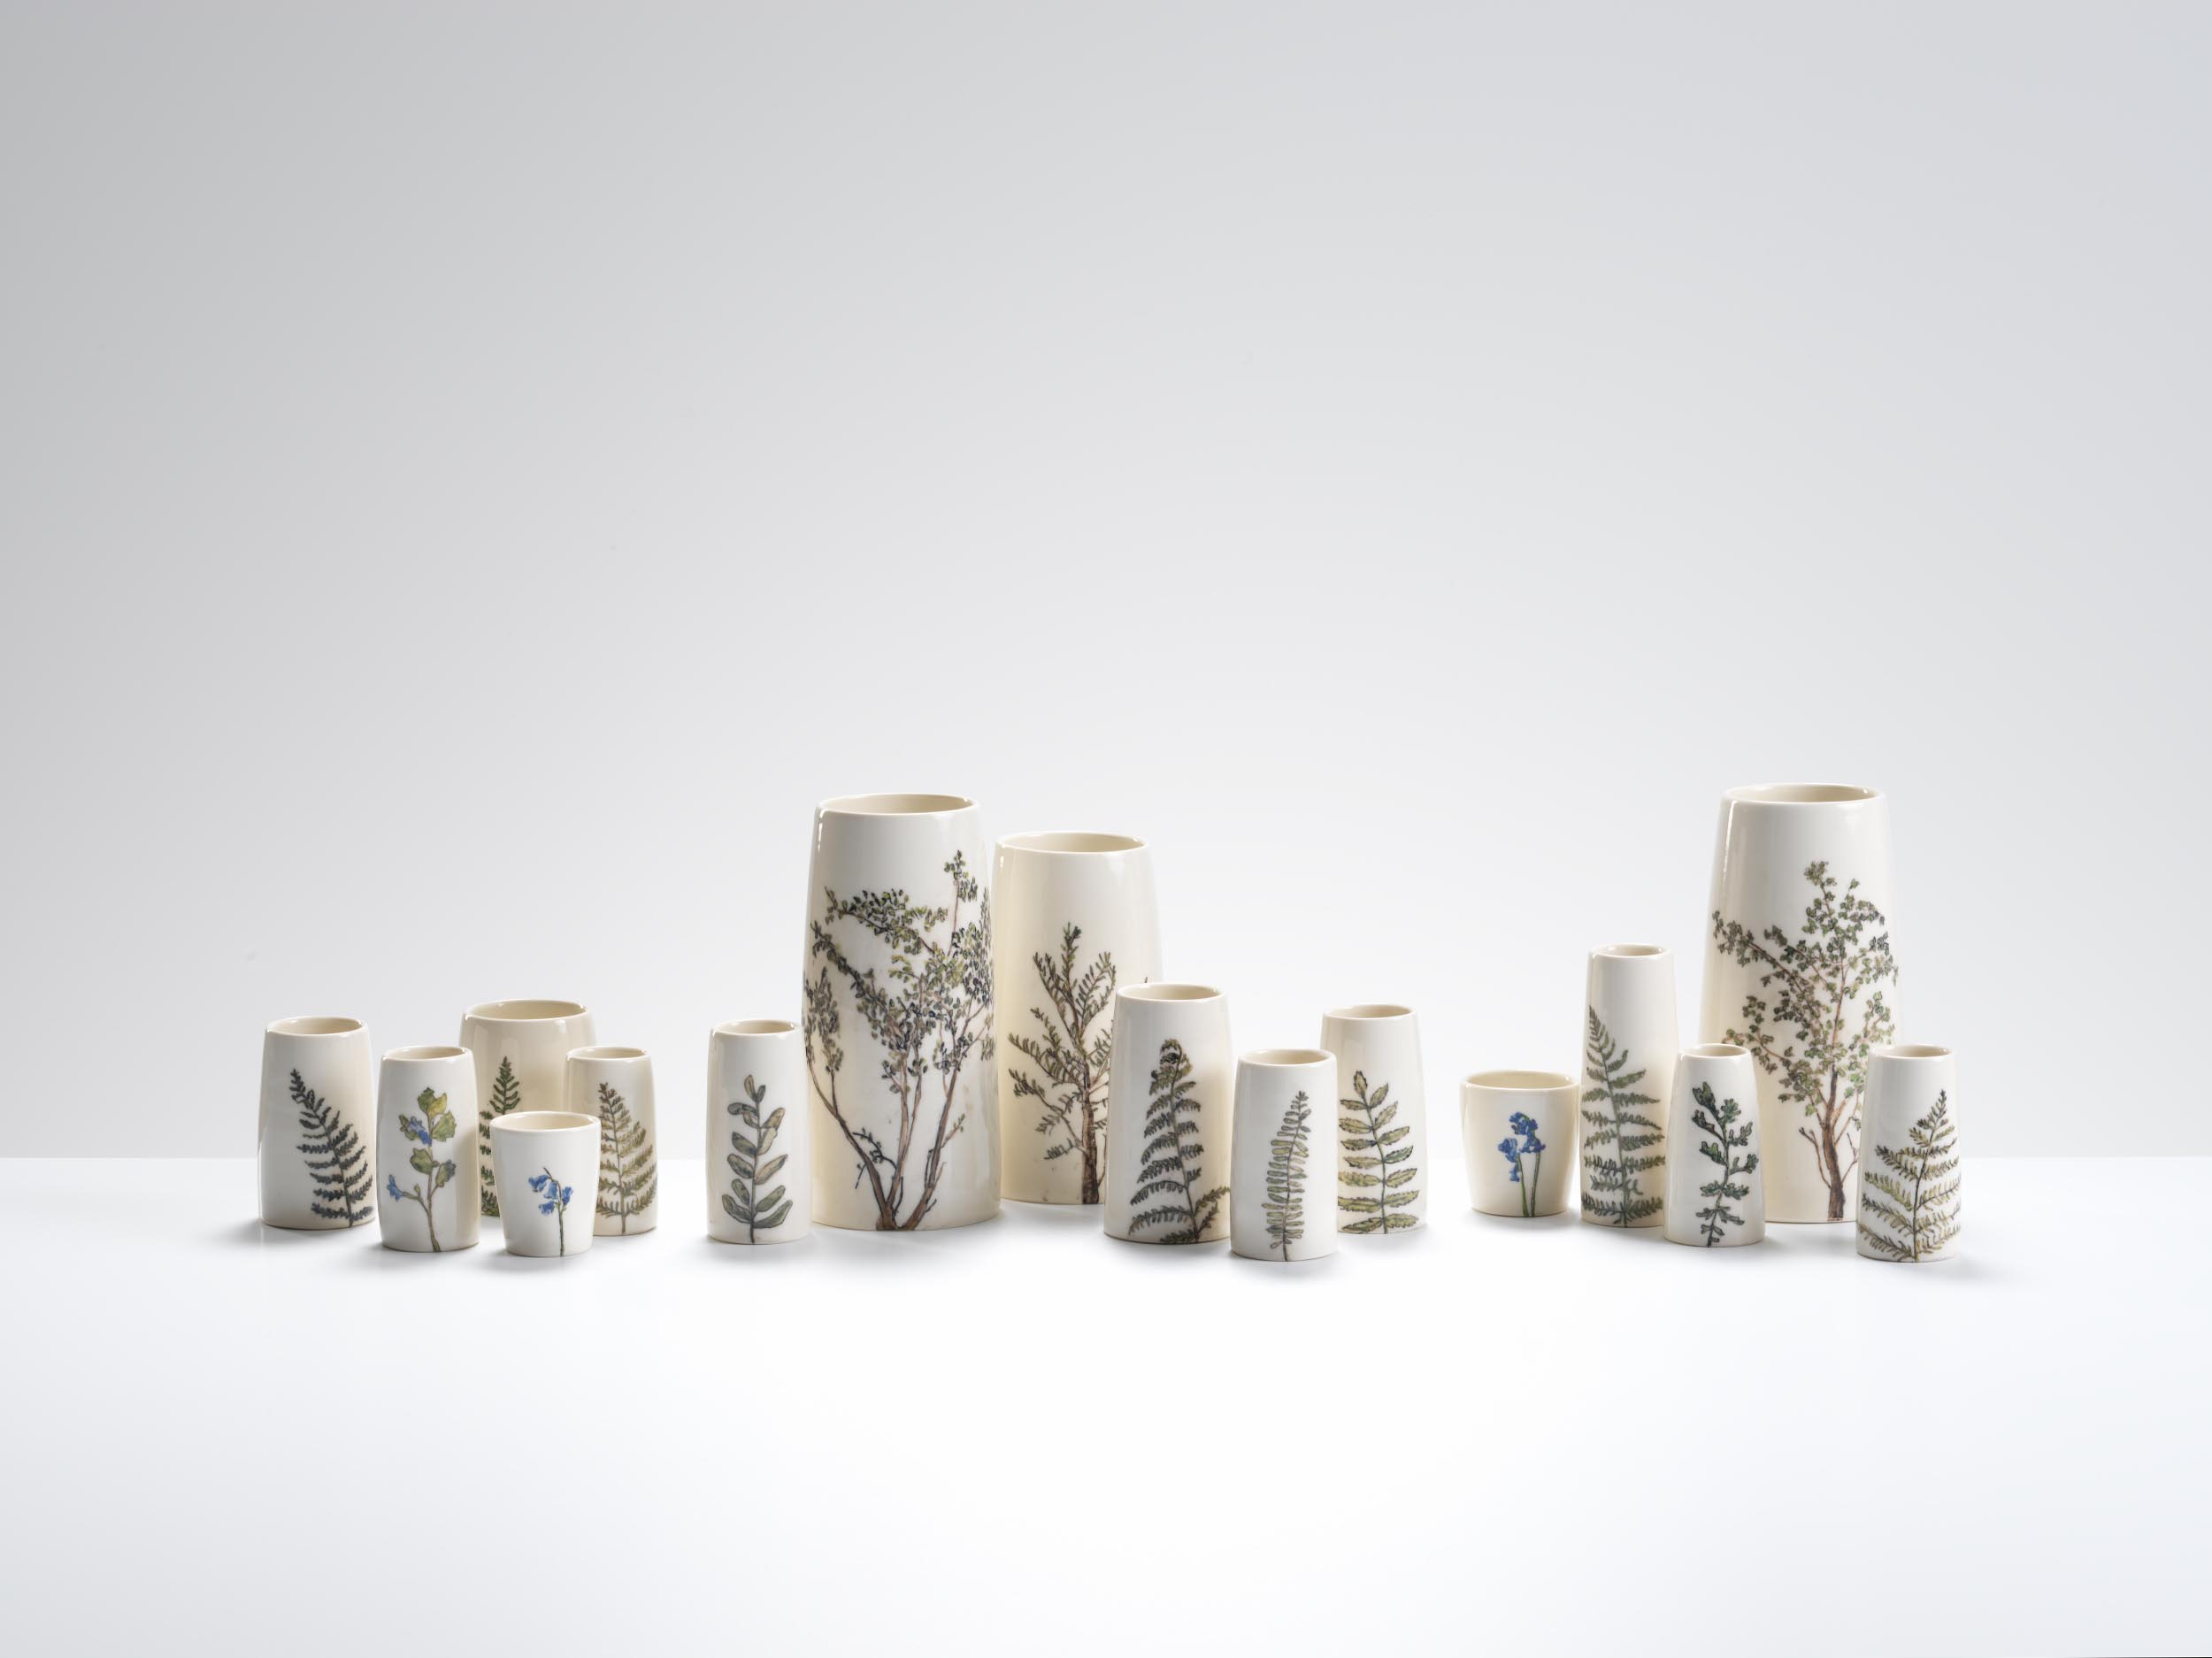 Plant life at Highgate Woods, 2018, wheel-thrown and hand-painted porcelain, 10-30cm height (various pieces)